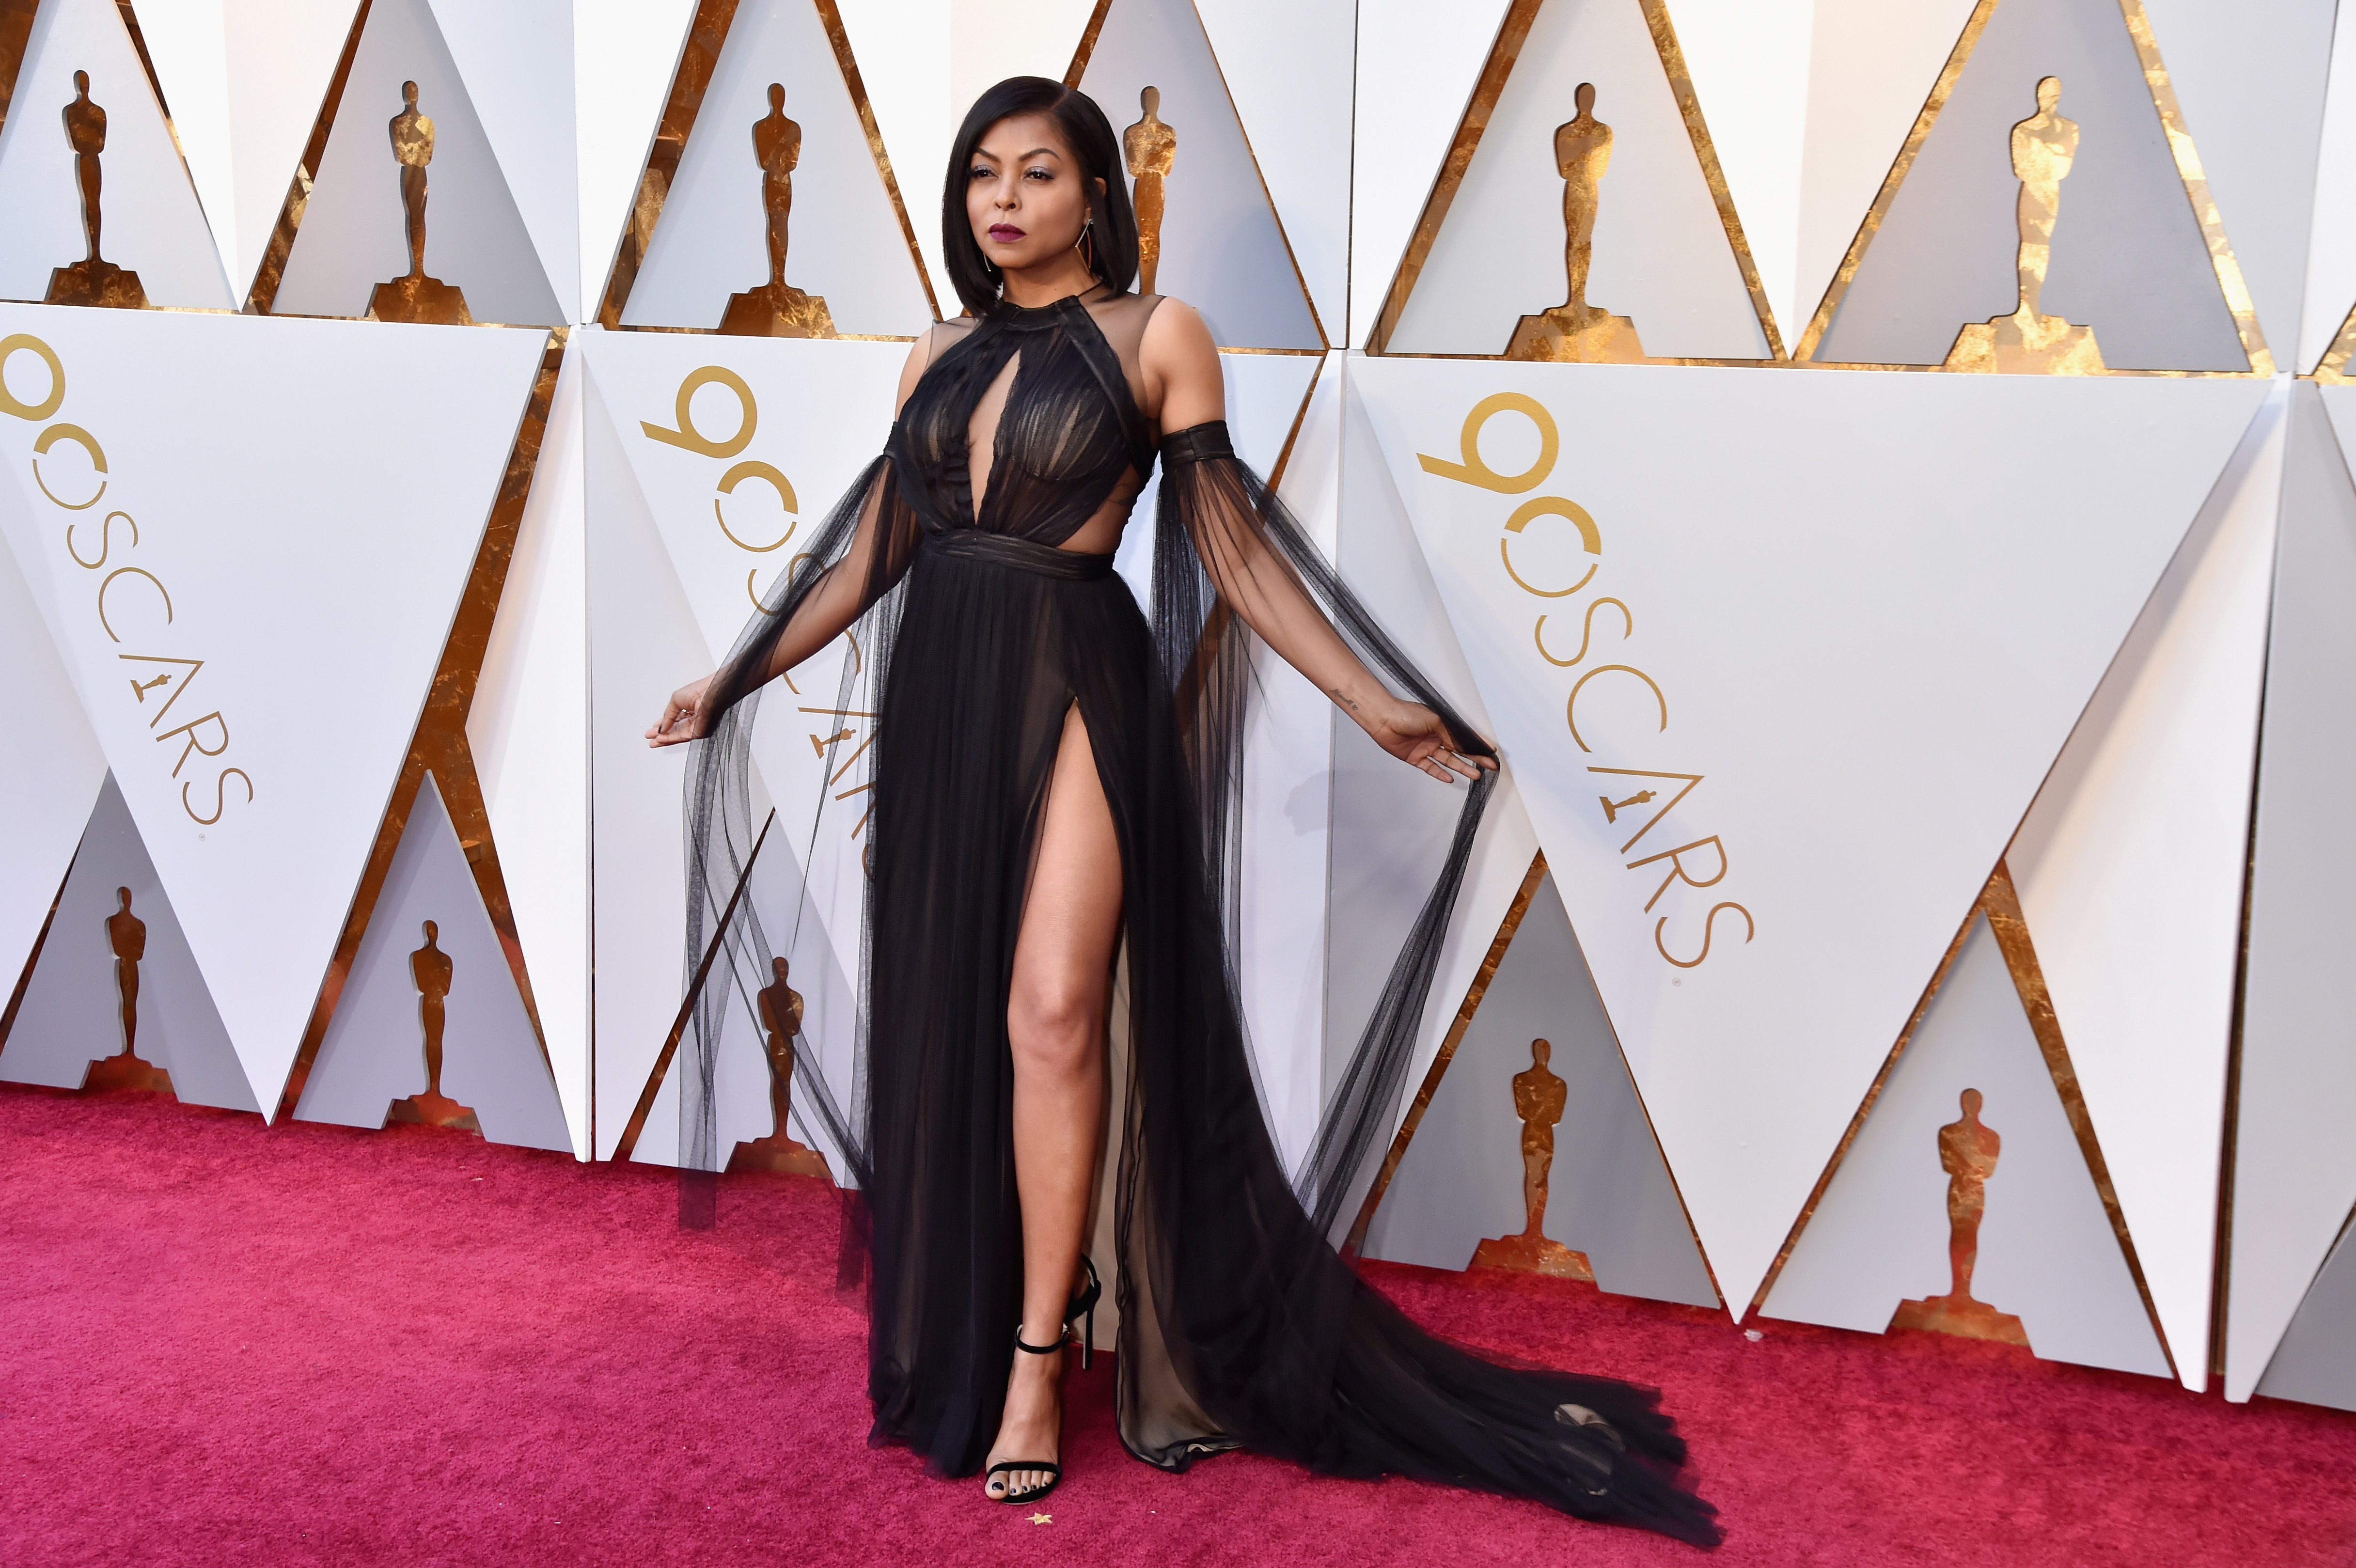 Taraji P. Henson attends the 90th Annual Academy Awards at Hollywood & Highland Center on March 4.